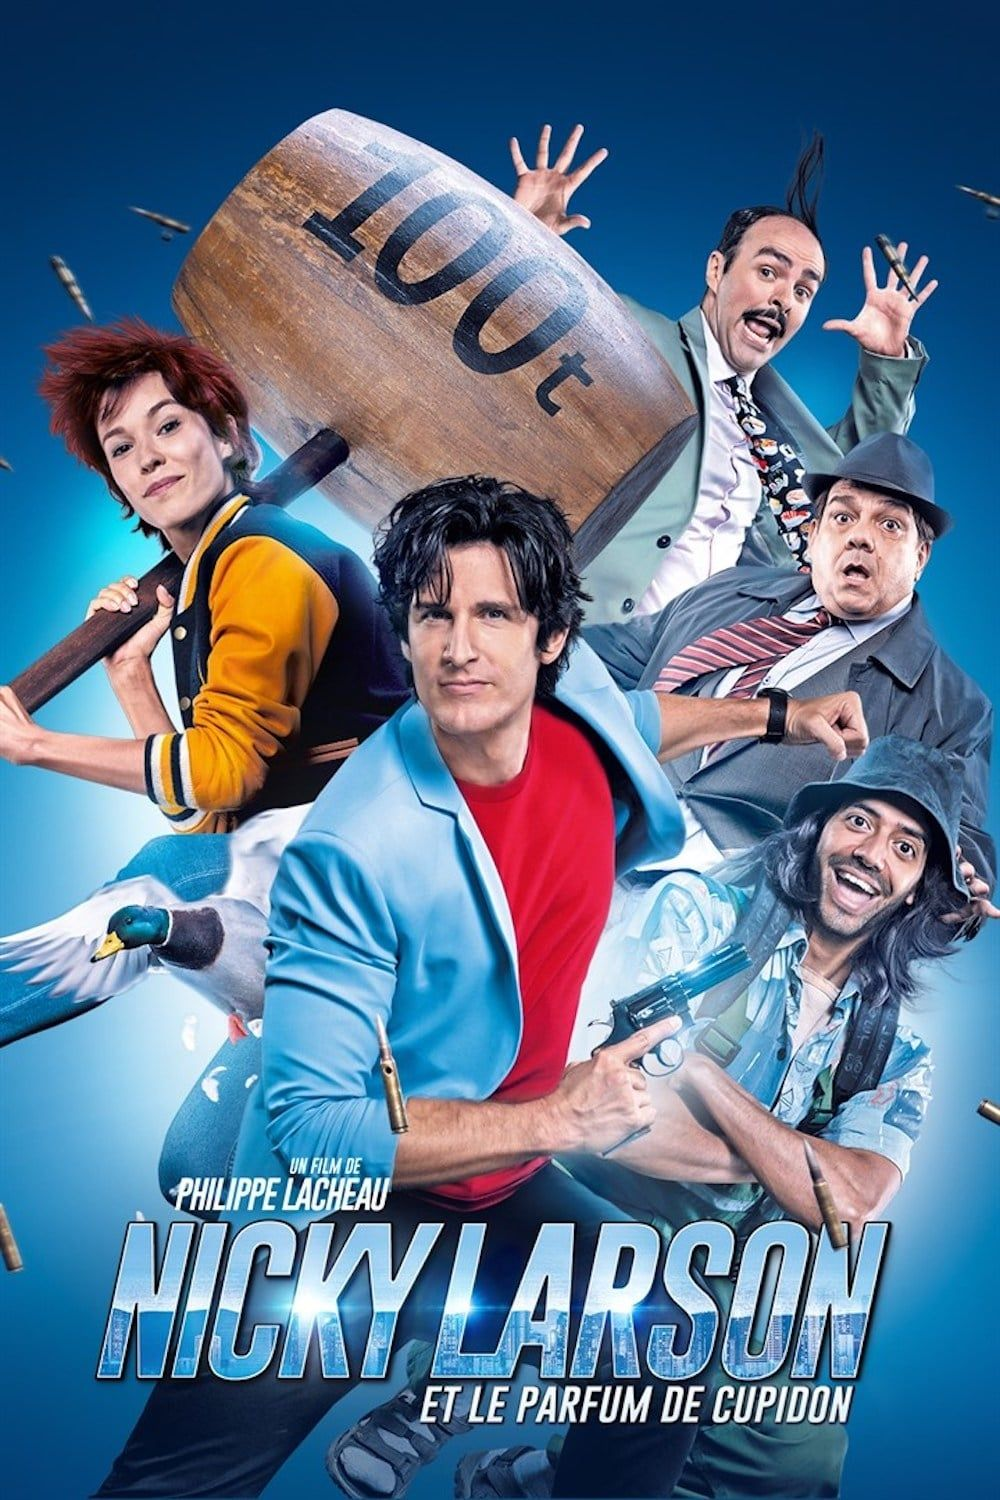 Telecharger Nicky Larson Cupidon : telecharger, nicky, larson, cupidon, Nicky, Larson, Parfum, Cupidon, (2018), Streaming, Larson,, Film,, Films, Complets